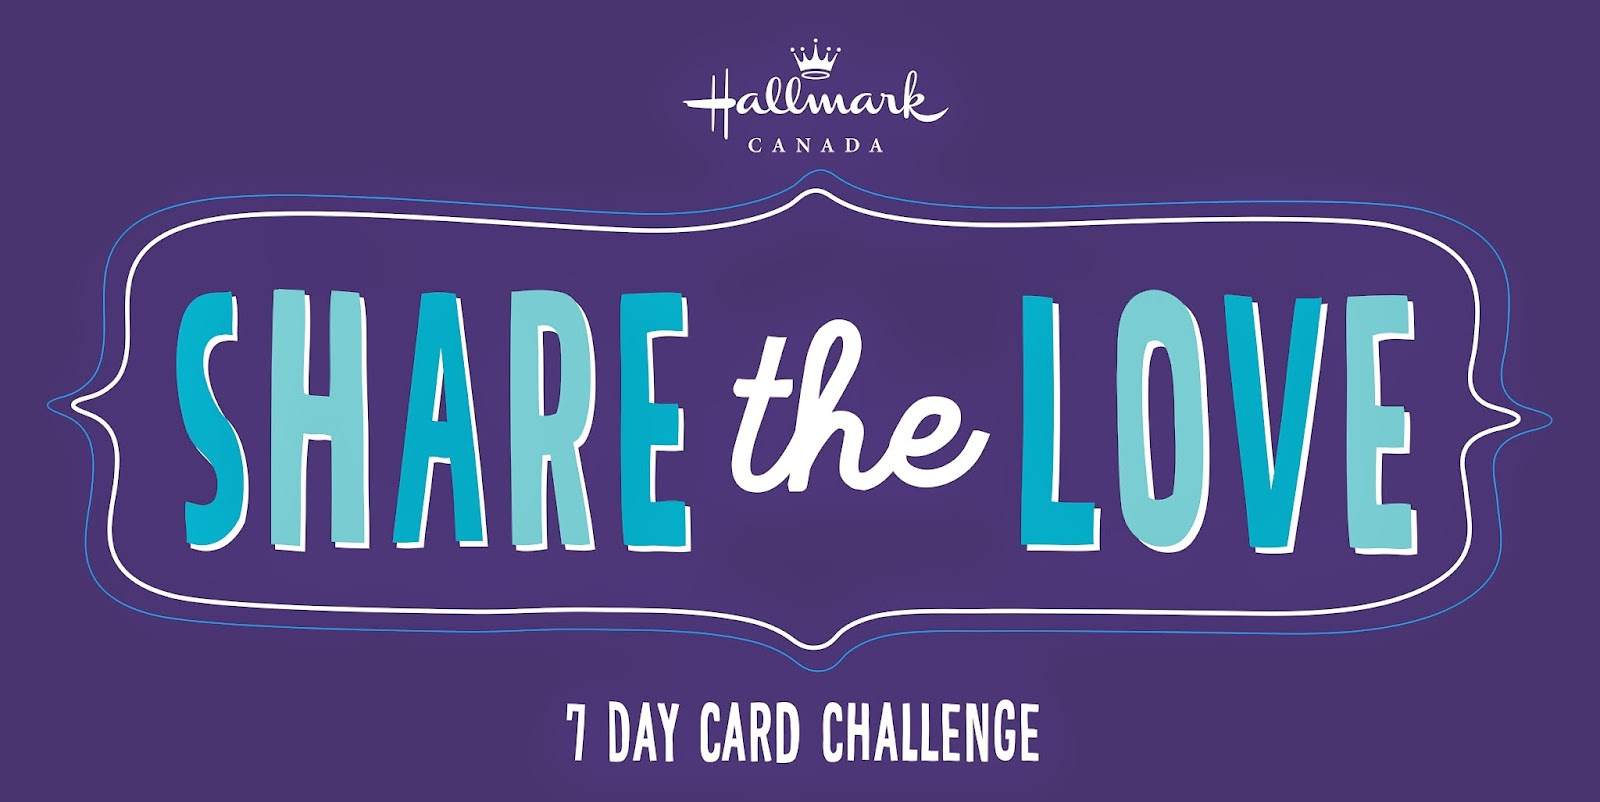 Share the Love, A Hallmark 7-Day Card Challenge